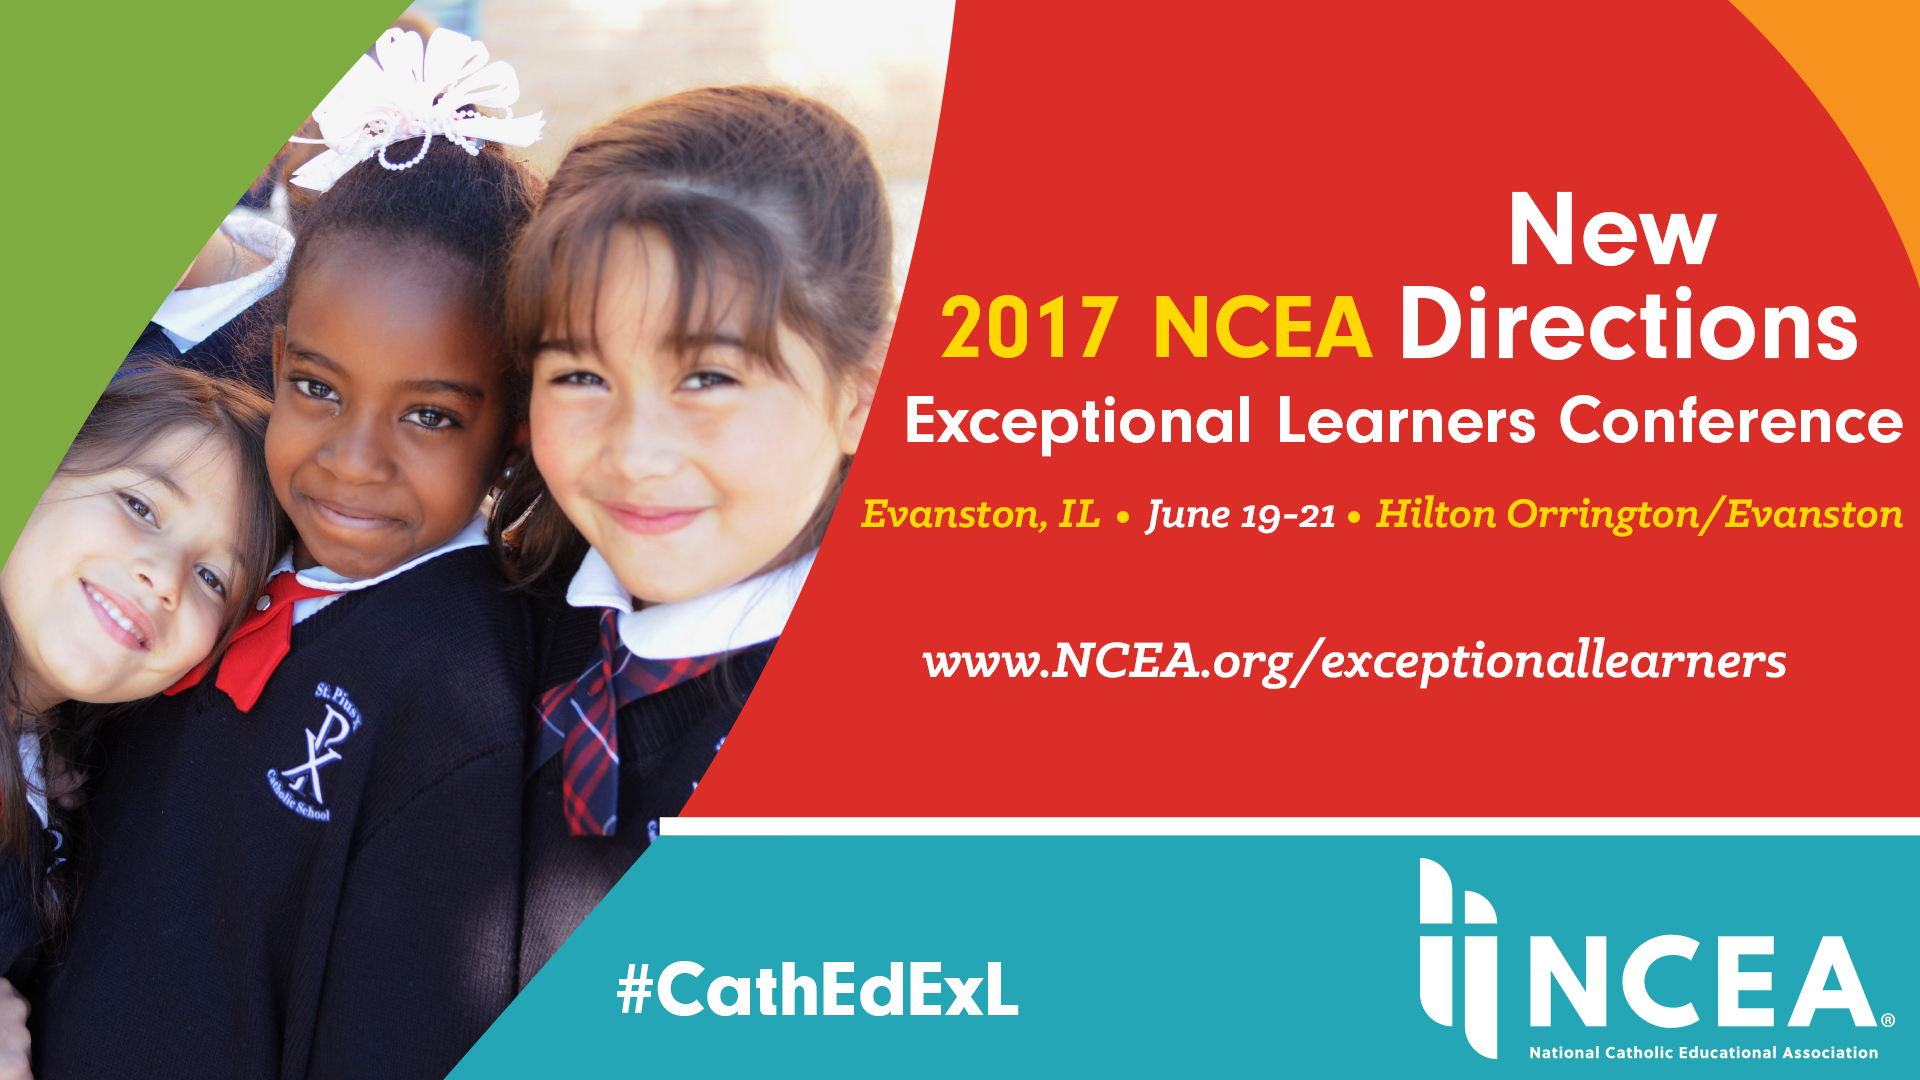 2017 NCEA New Directions Exceptional Learners Conference